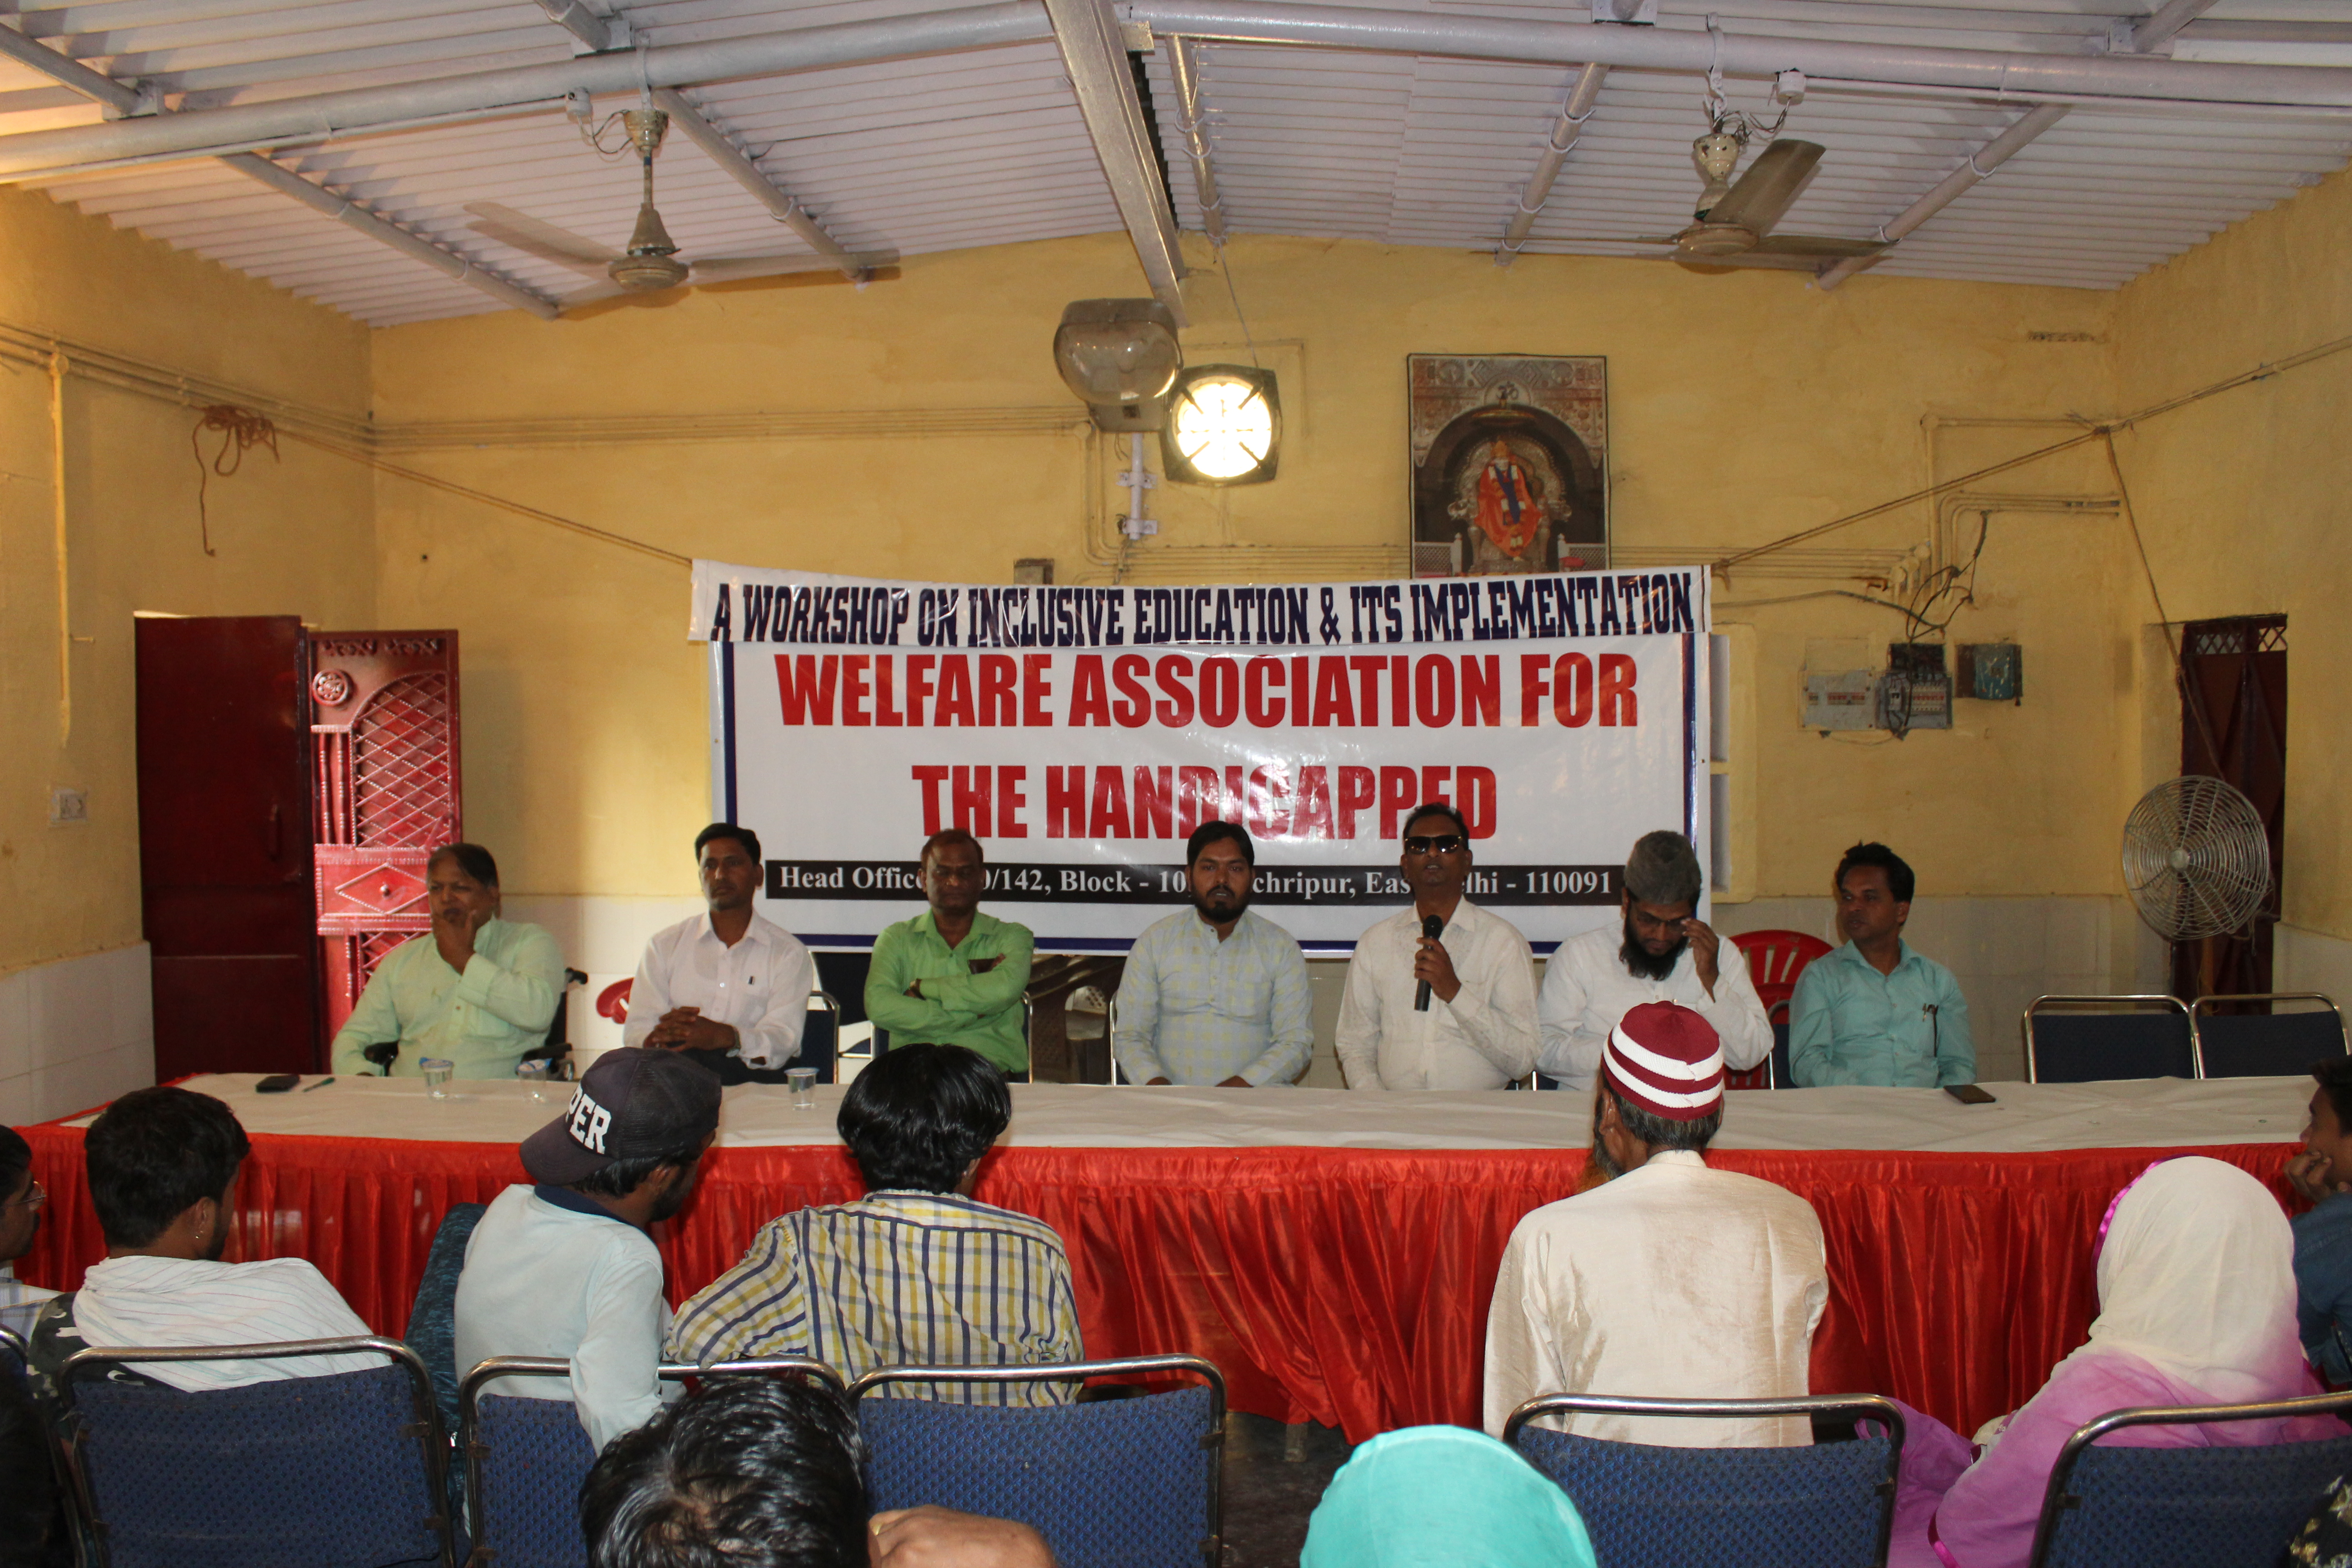 Photo of Workshop on Inclusive Education & Its Implementation by Welfare Association for the Handicapped